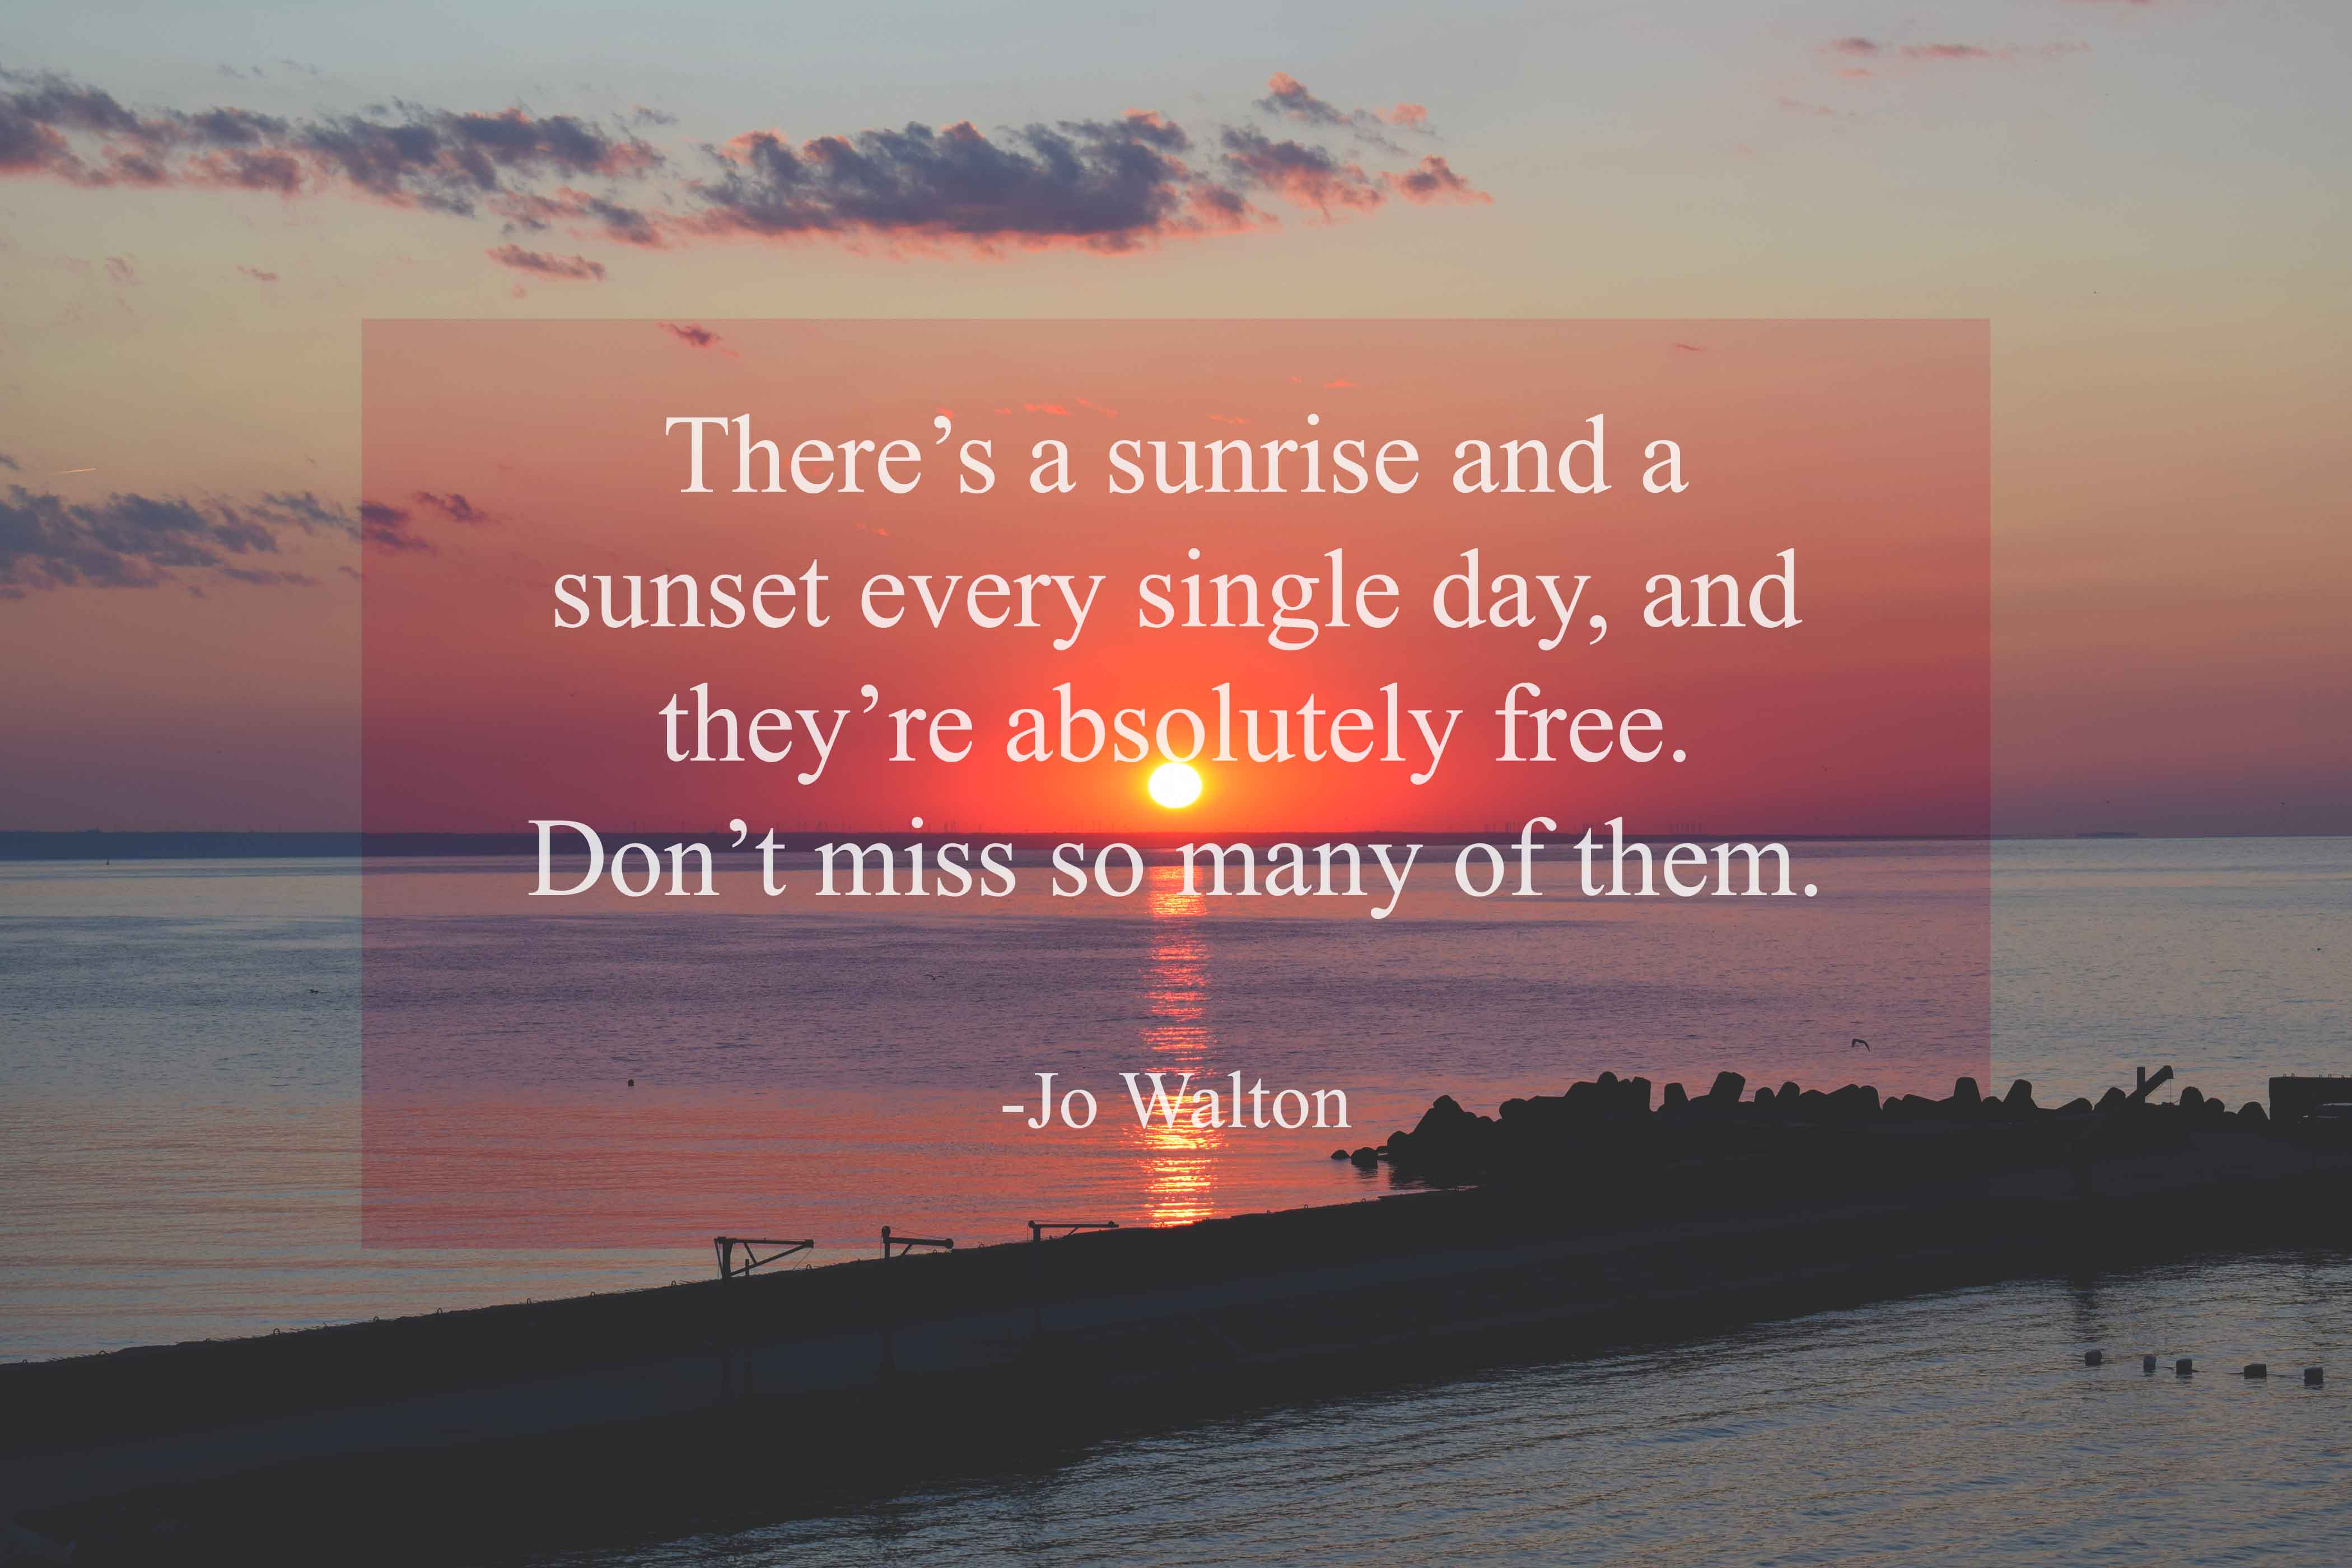 Jo Walton life is beautiful quotes